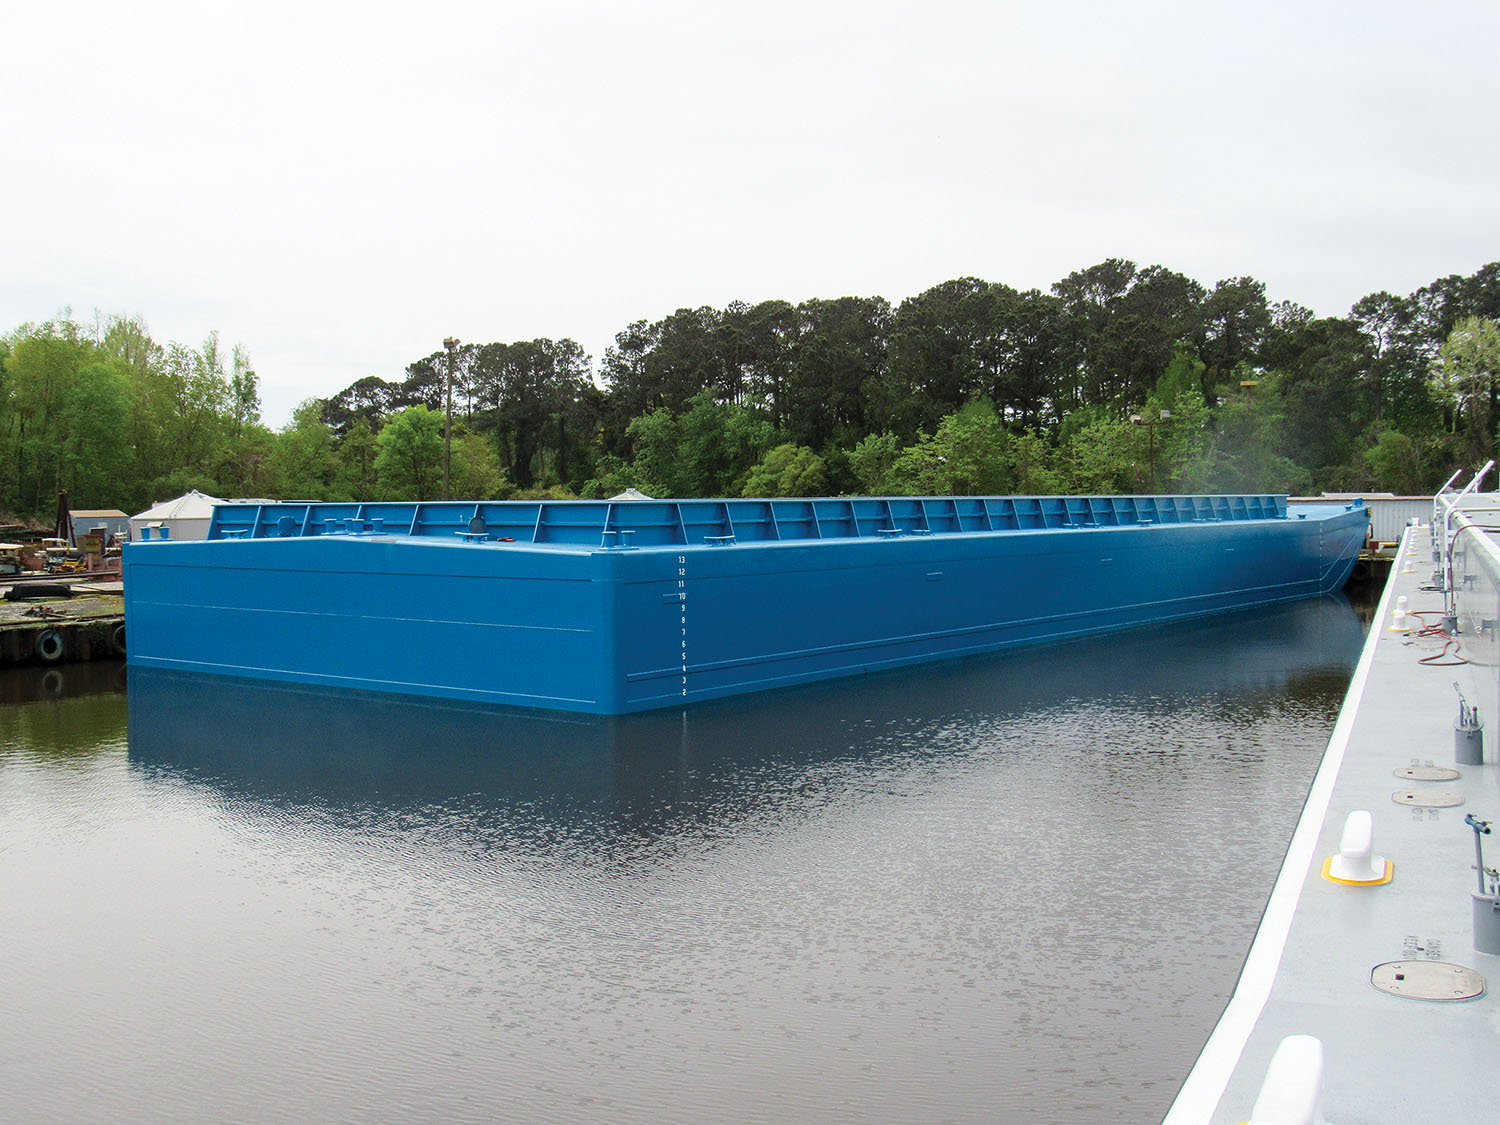 At 200 by 70 feet, the new barge takes up the same space in a tow as two standard hopper barges, but can hold 72 40-foot containers, nearly twice as much as the two standard barges would be able to handle.